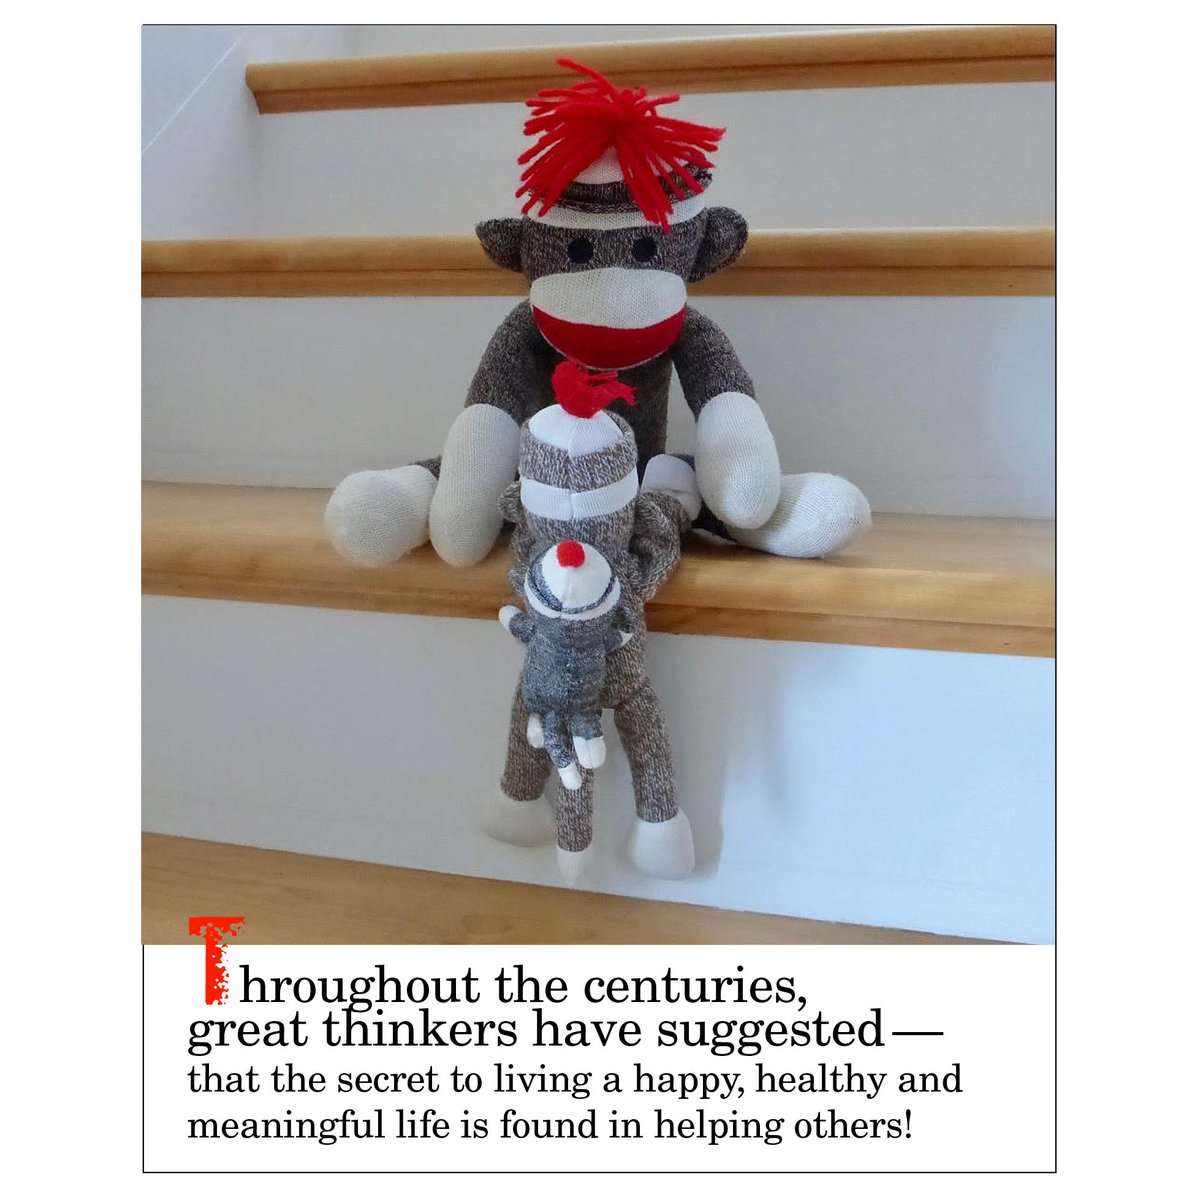 Thought for today. #sockmonkey #motivation #wisdom #wisewords #secrettolife #happy #healthy #meaningful #helpothers  https://www. facebook.com/sockmonkeysez/ photos/a.774219992671626.1073741828.739846952775597/1483382618422023/?type=3&amp;theater &nbsp; … <br>http://pic.twitter.com/UjxIN845IX